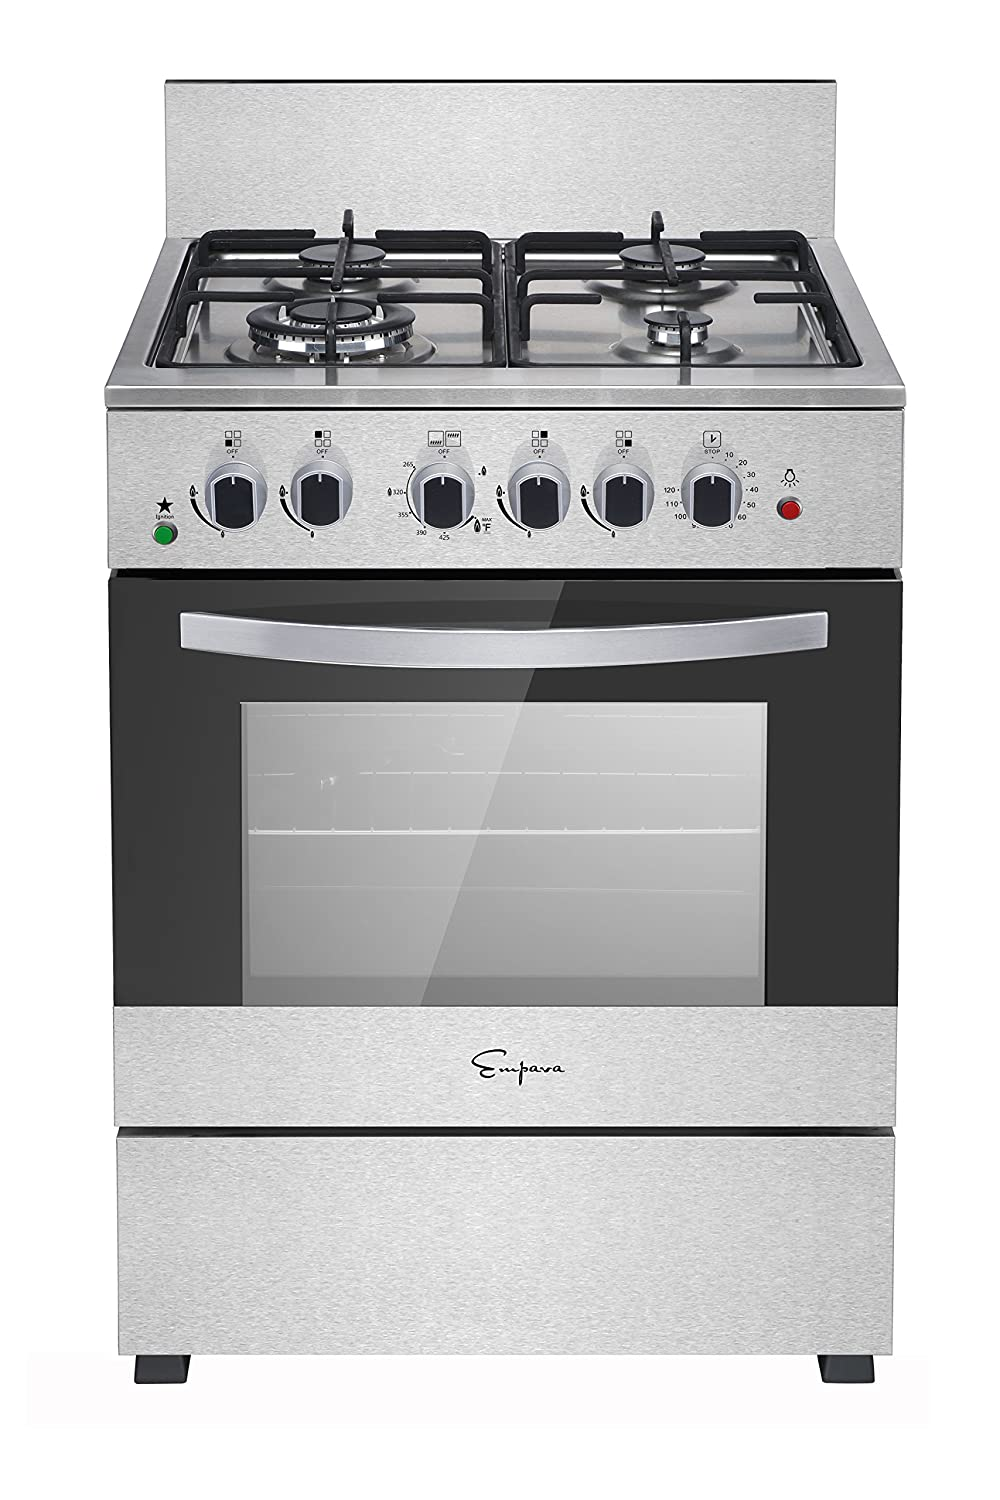 "Empava 24"" Slide-In Free Standing Gas Range W/Gas Rotisserie Single Oven and 4 Italy Sabaf Burner Cooktop EMPV-24GR02AT-LTL"